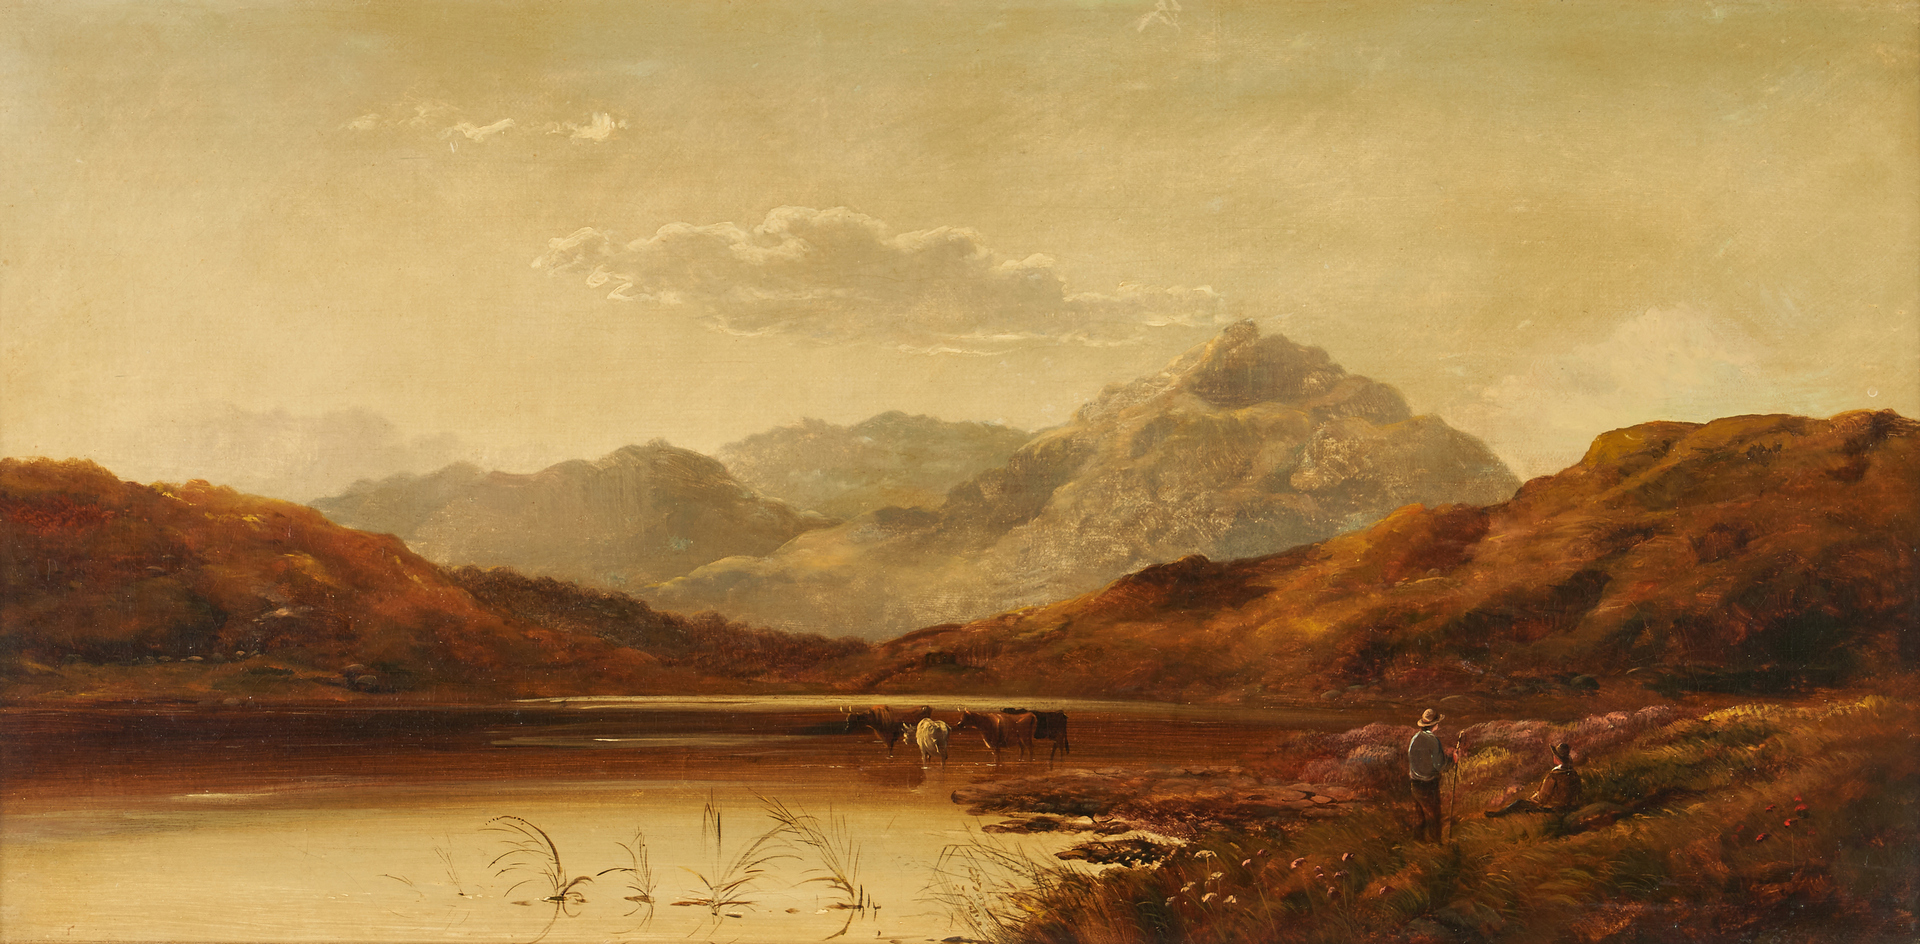 Lot 319: Attr. Charles Leslie, O/C Landscape with figures and cattle